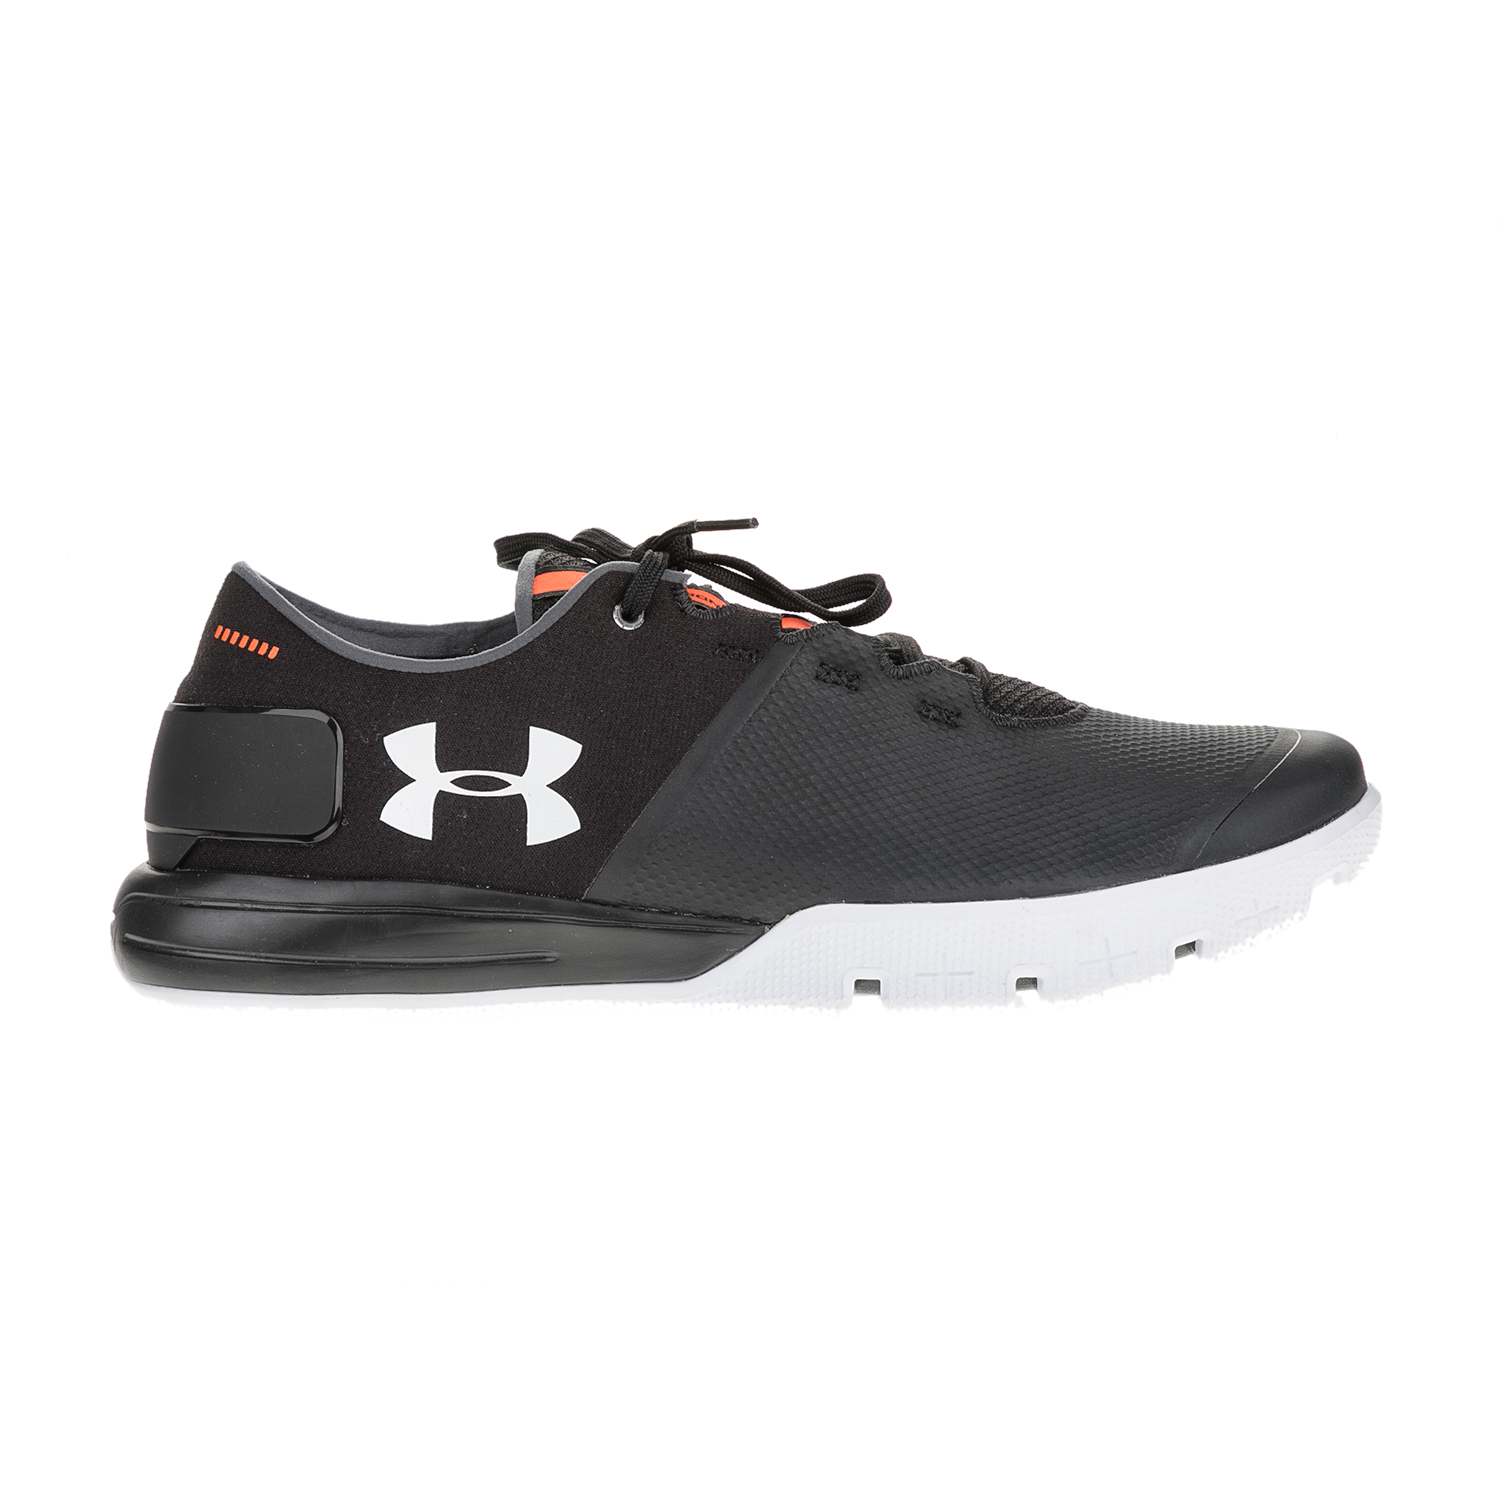 UNDER ARMOUR – Ανδρικά παπούτσια UA Charged Ultimate TR 2.0 μαύρα